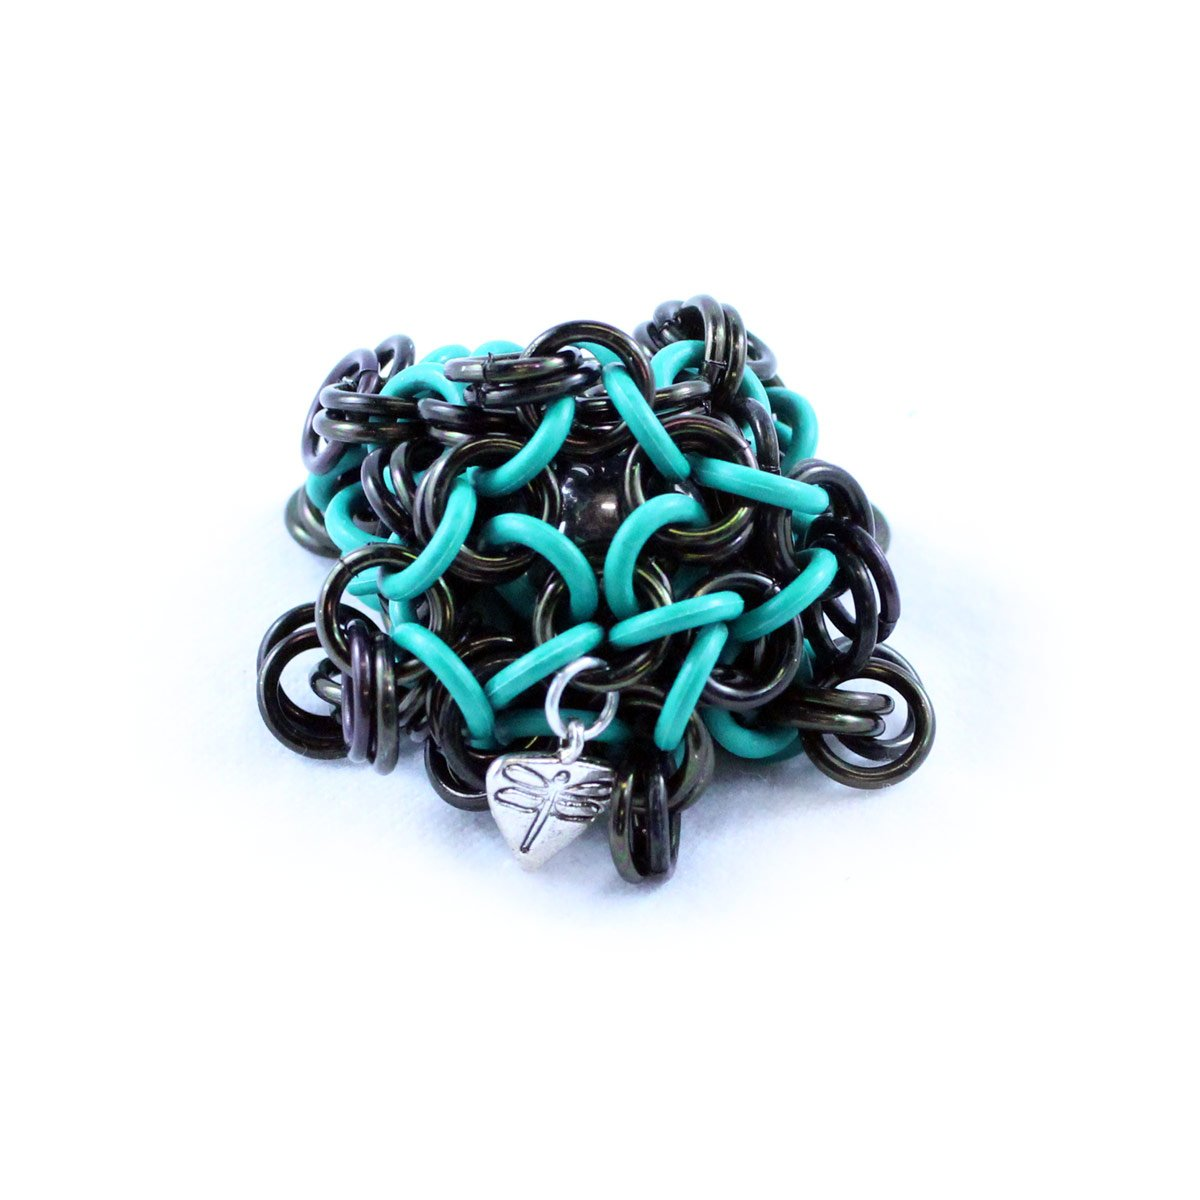 Dragonfly Footbags Black and Teal 22 Gram Chainmail Footbag (Hacky Sack)